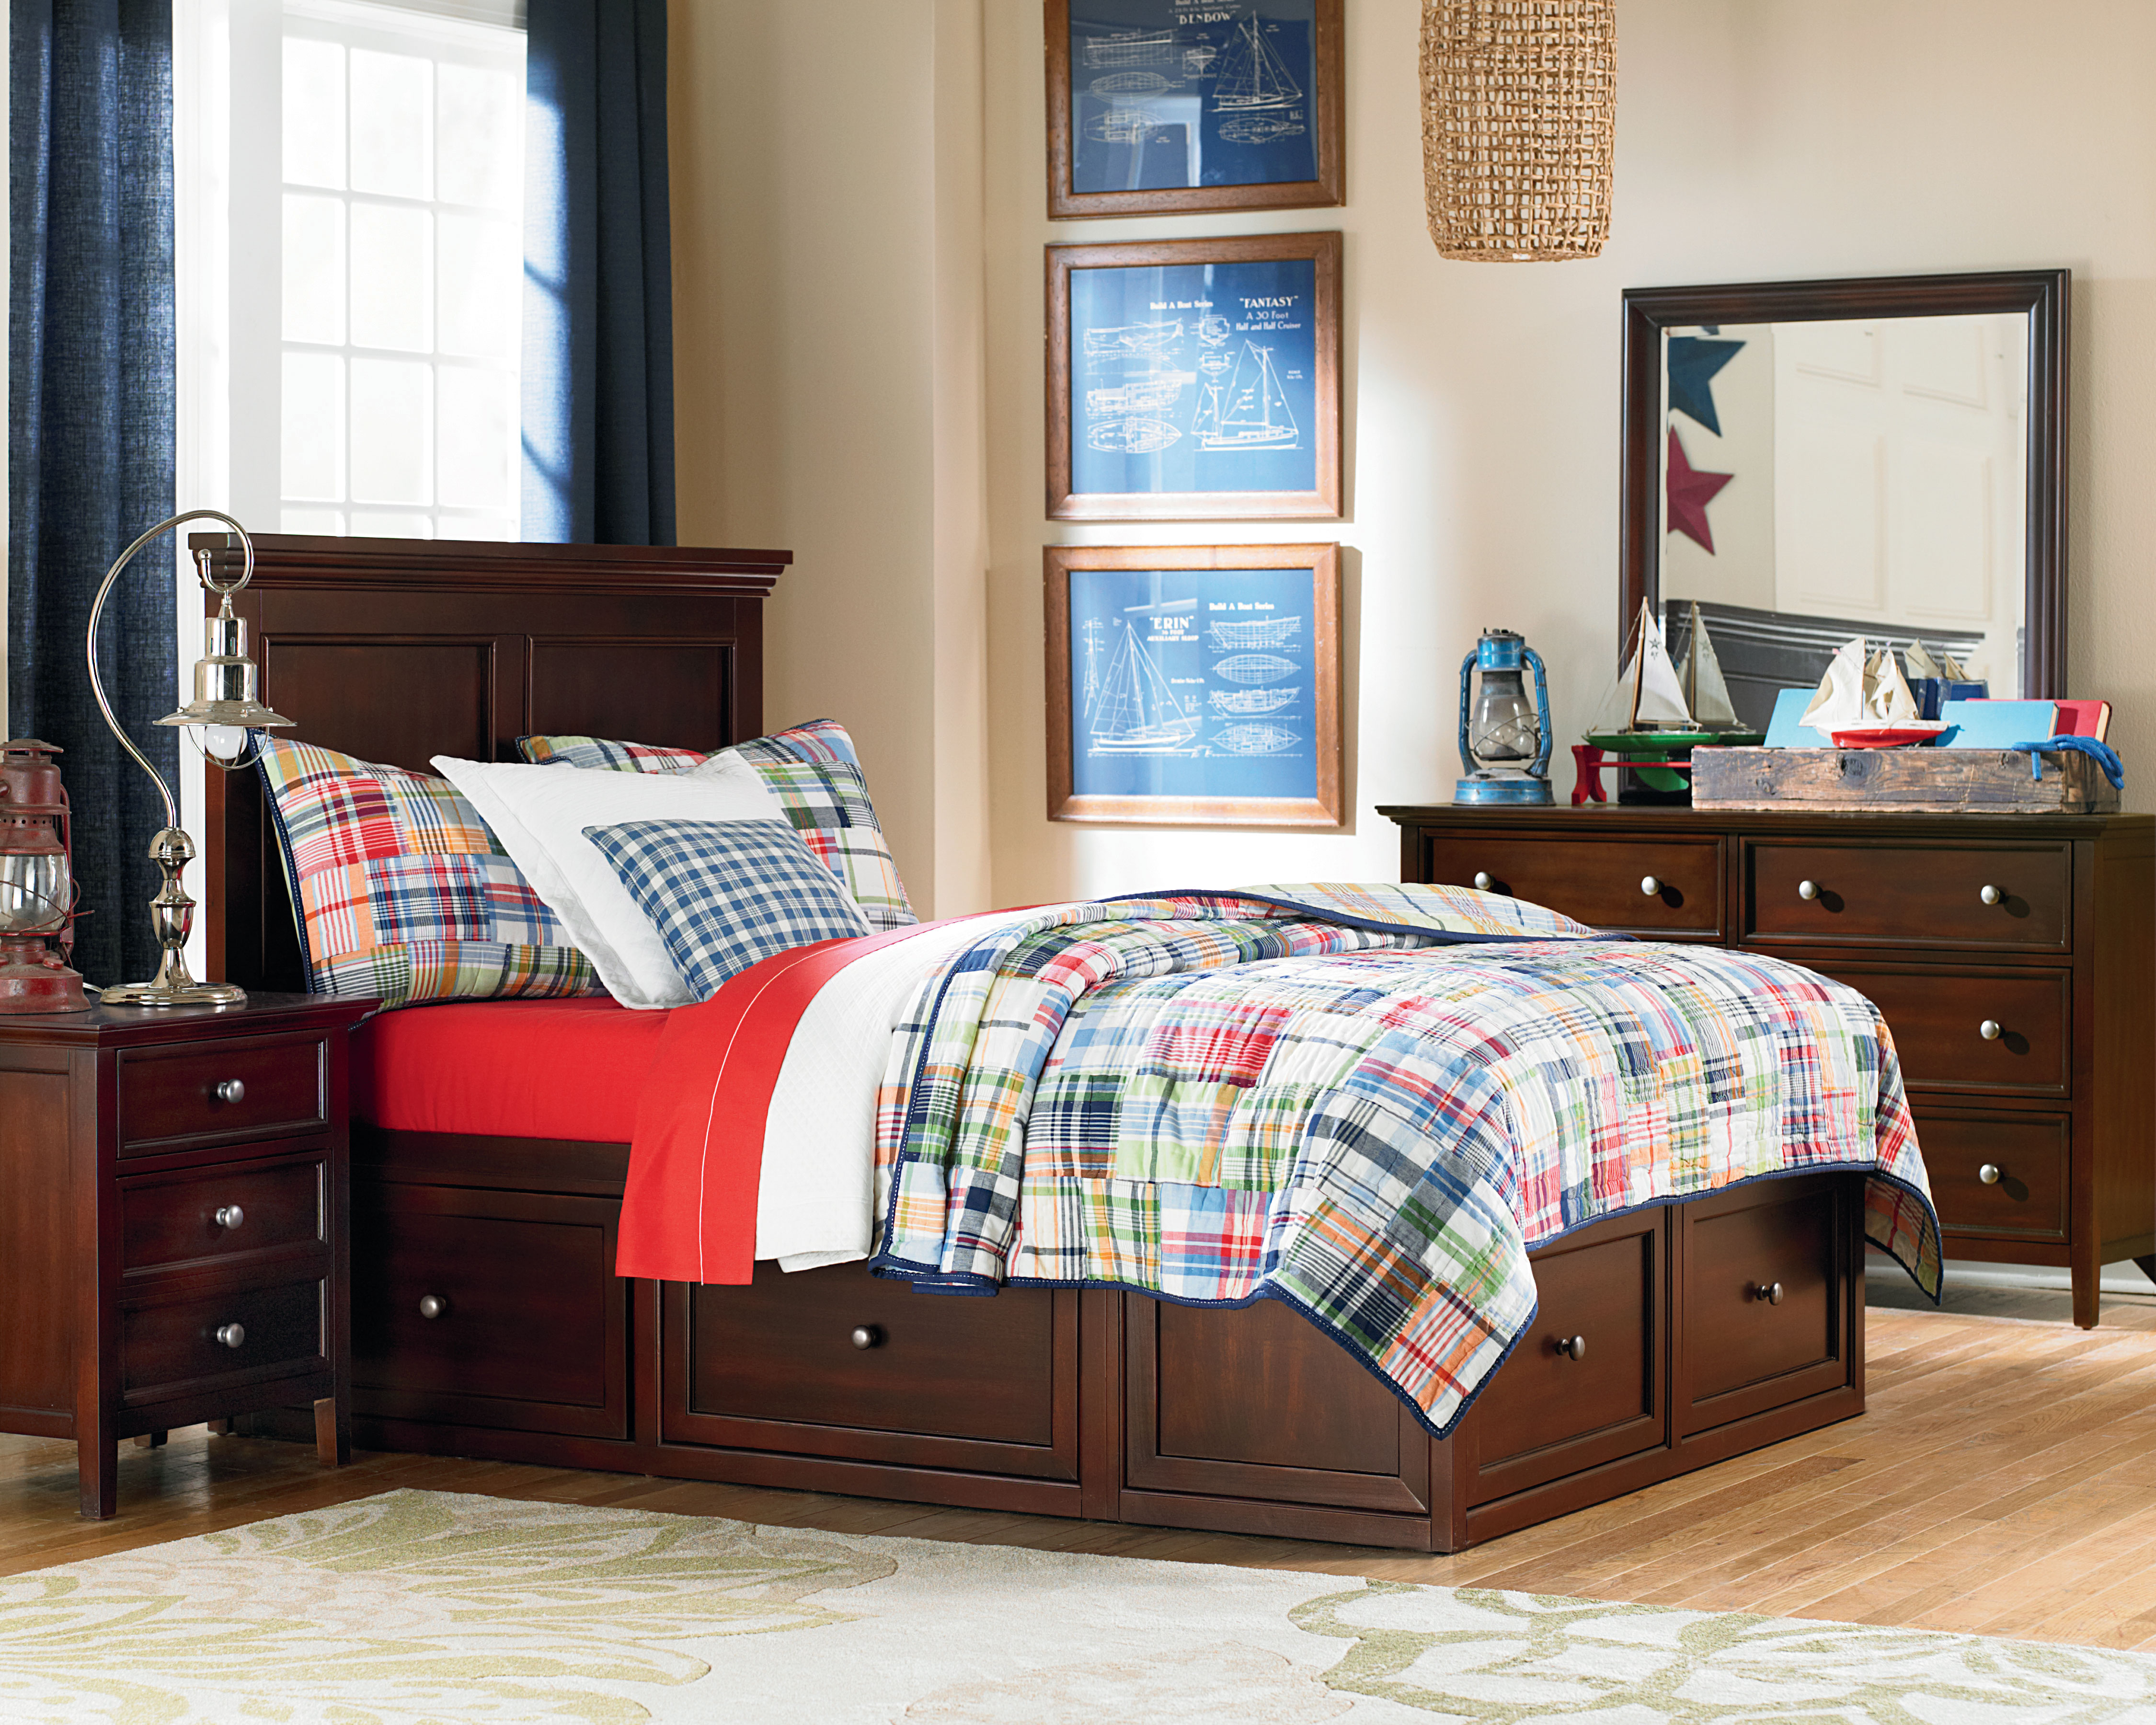 Levins Bedroom Furniture Kids Levin Furniture